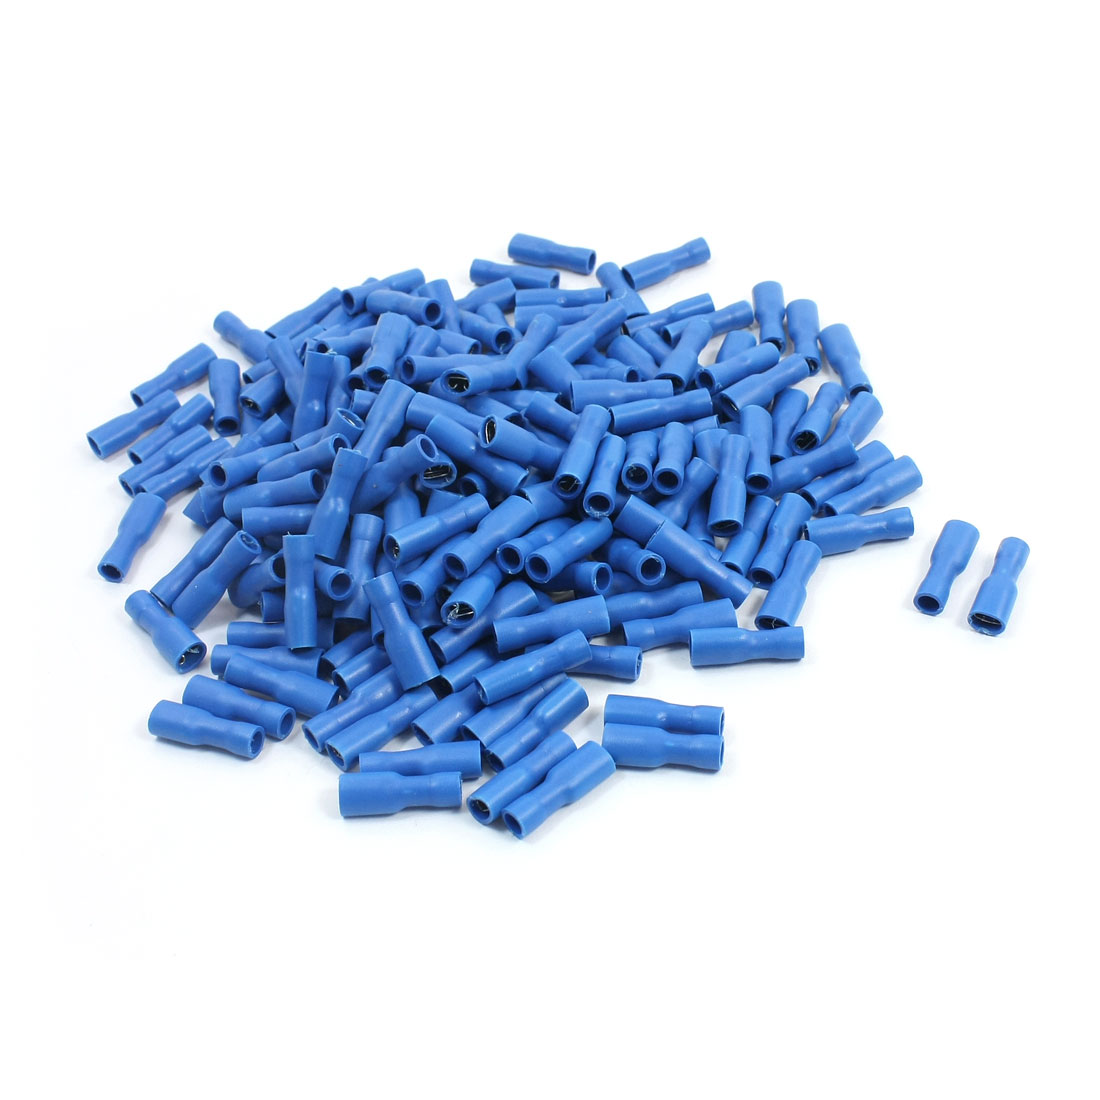 200pcs FDFD2-187 16-14AWG Wire Blue Plastic Housing Female Spade Connector Insulated Crimp Terminal